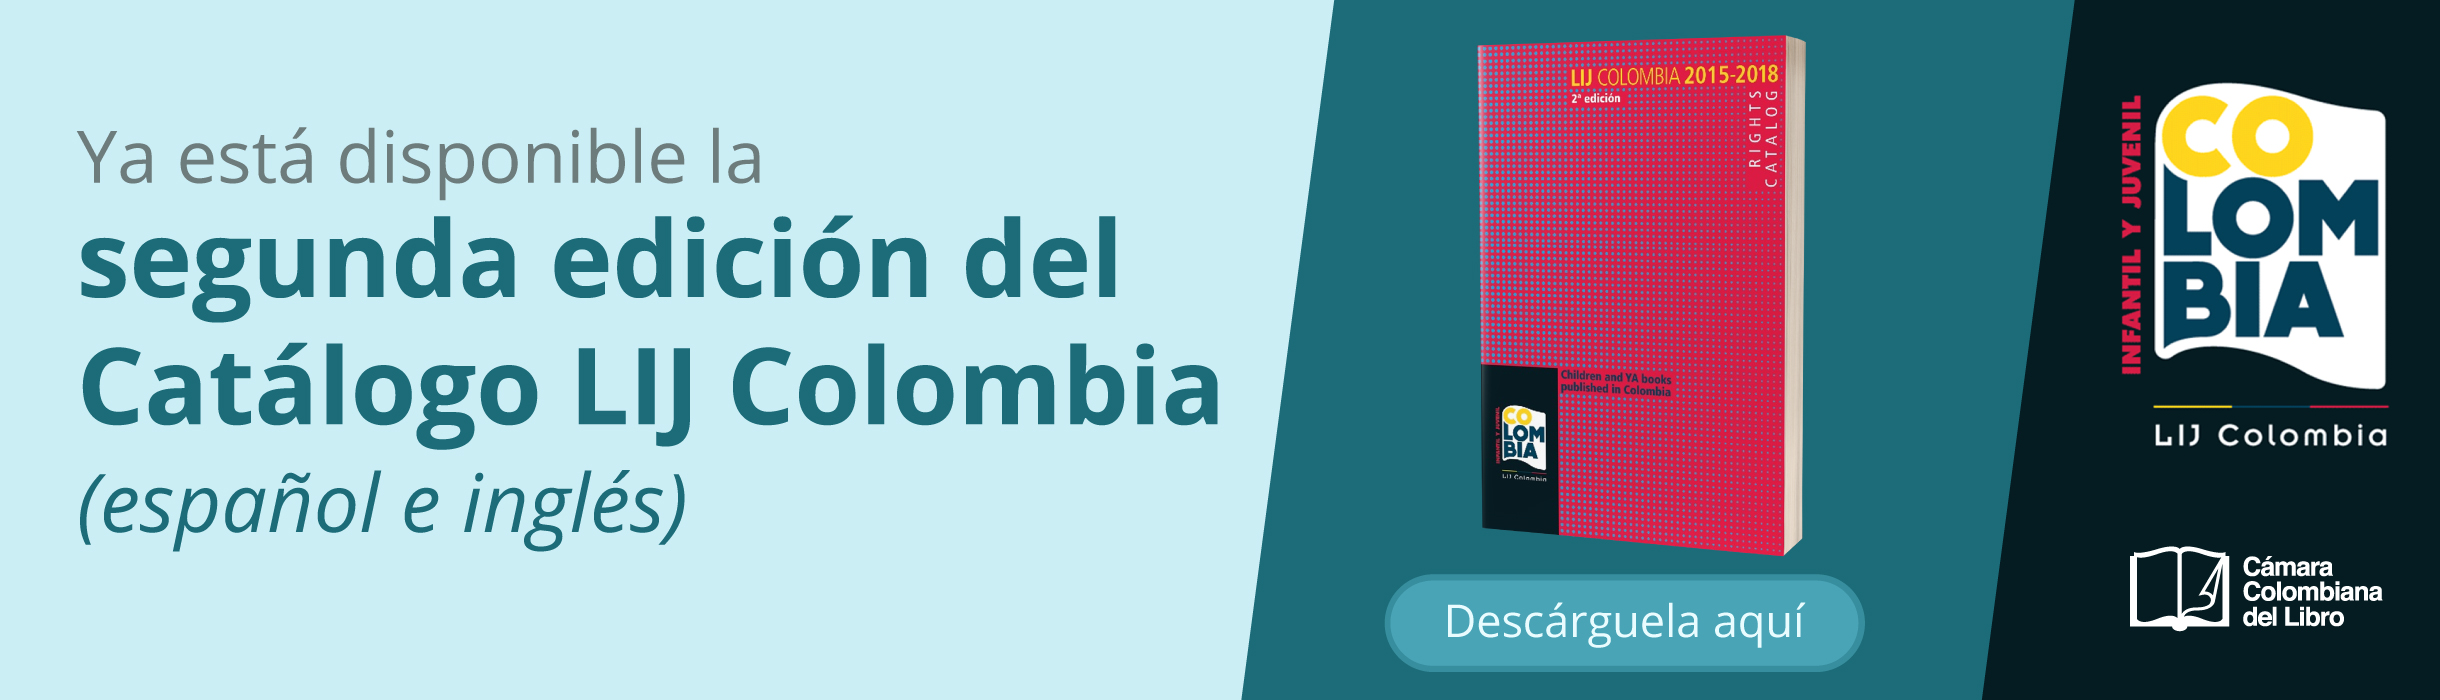 BannerCatalogoLIJColombia_BannerWebCCL2